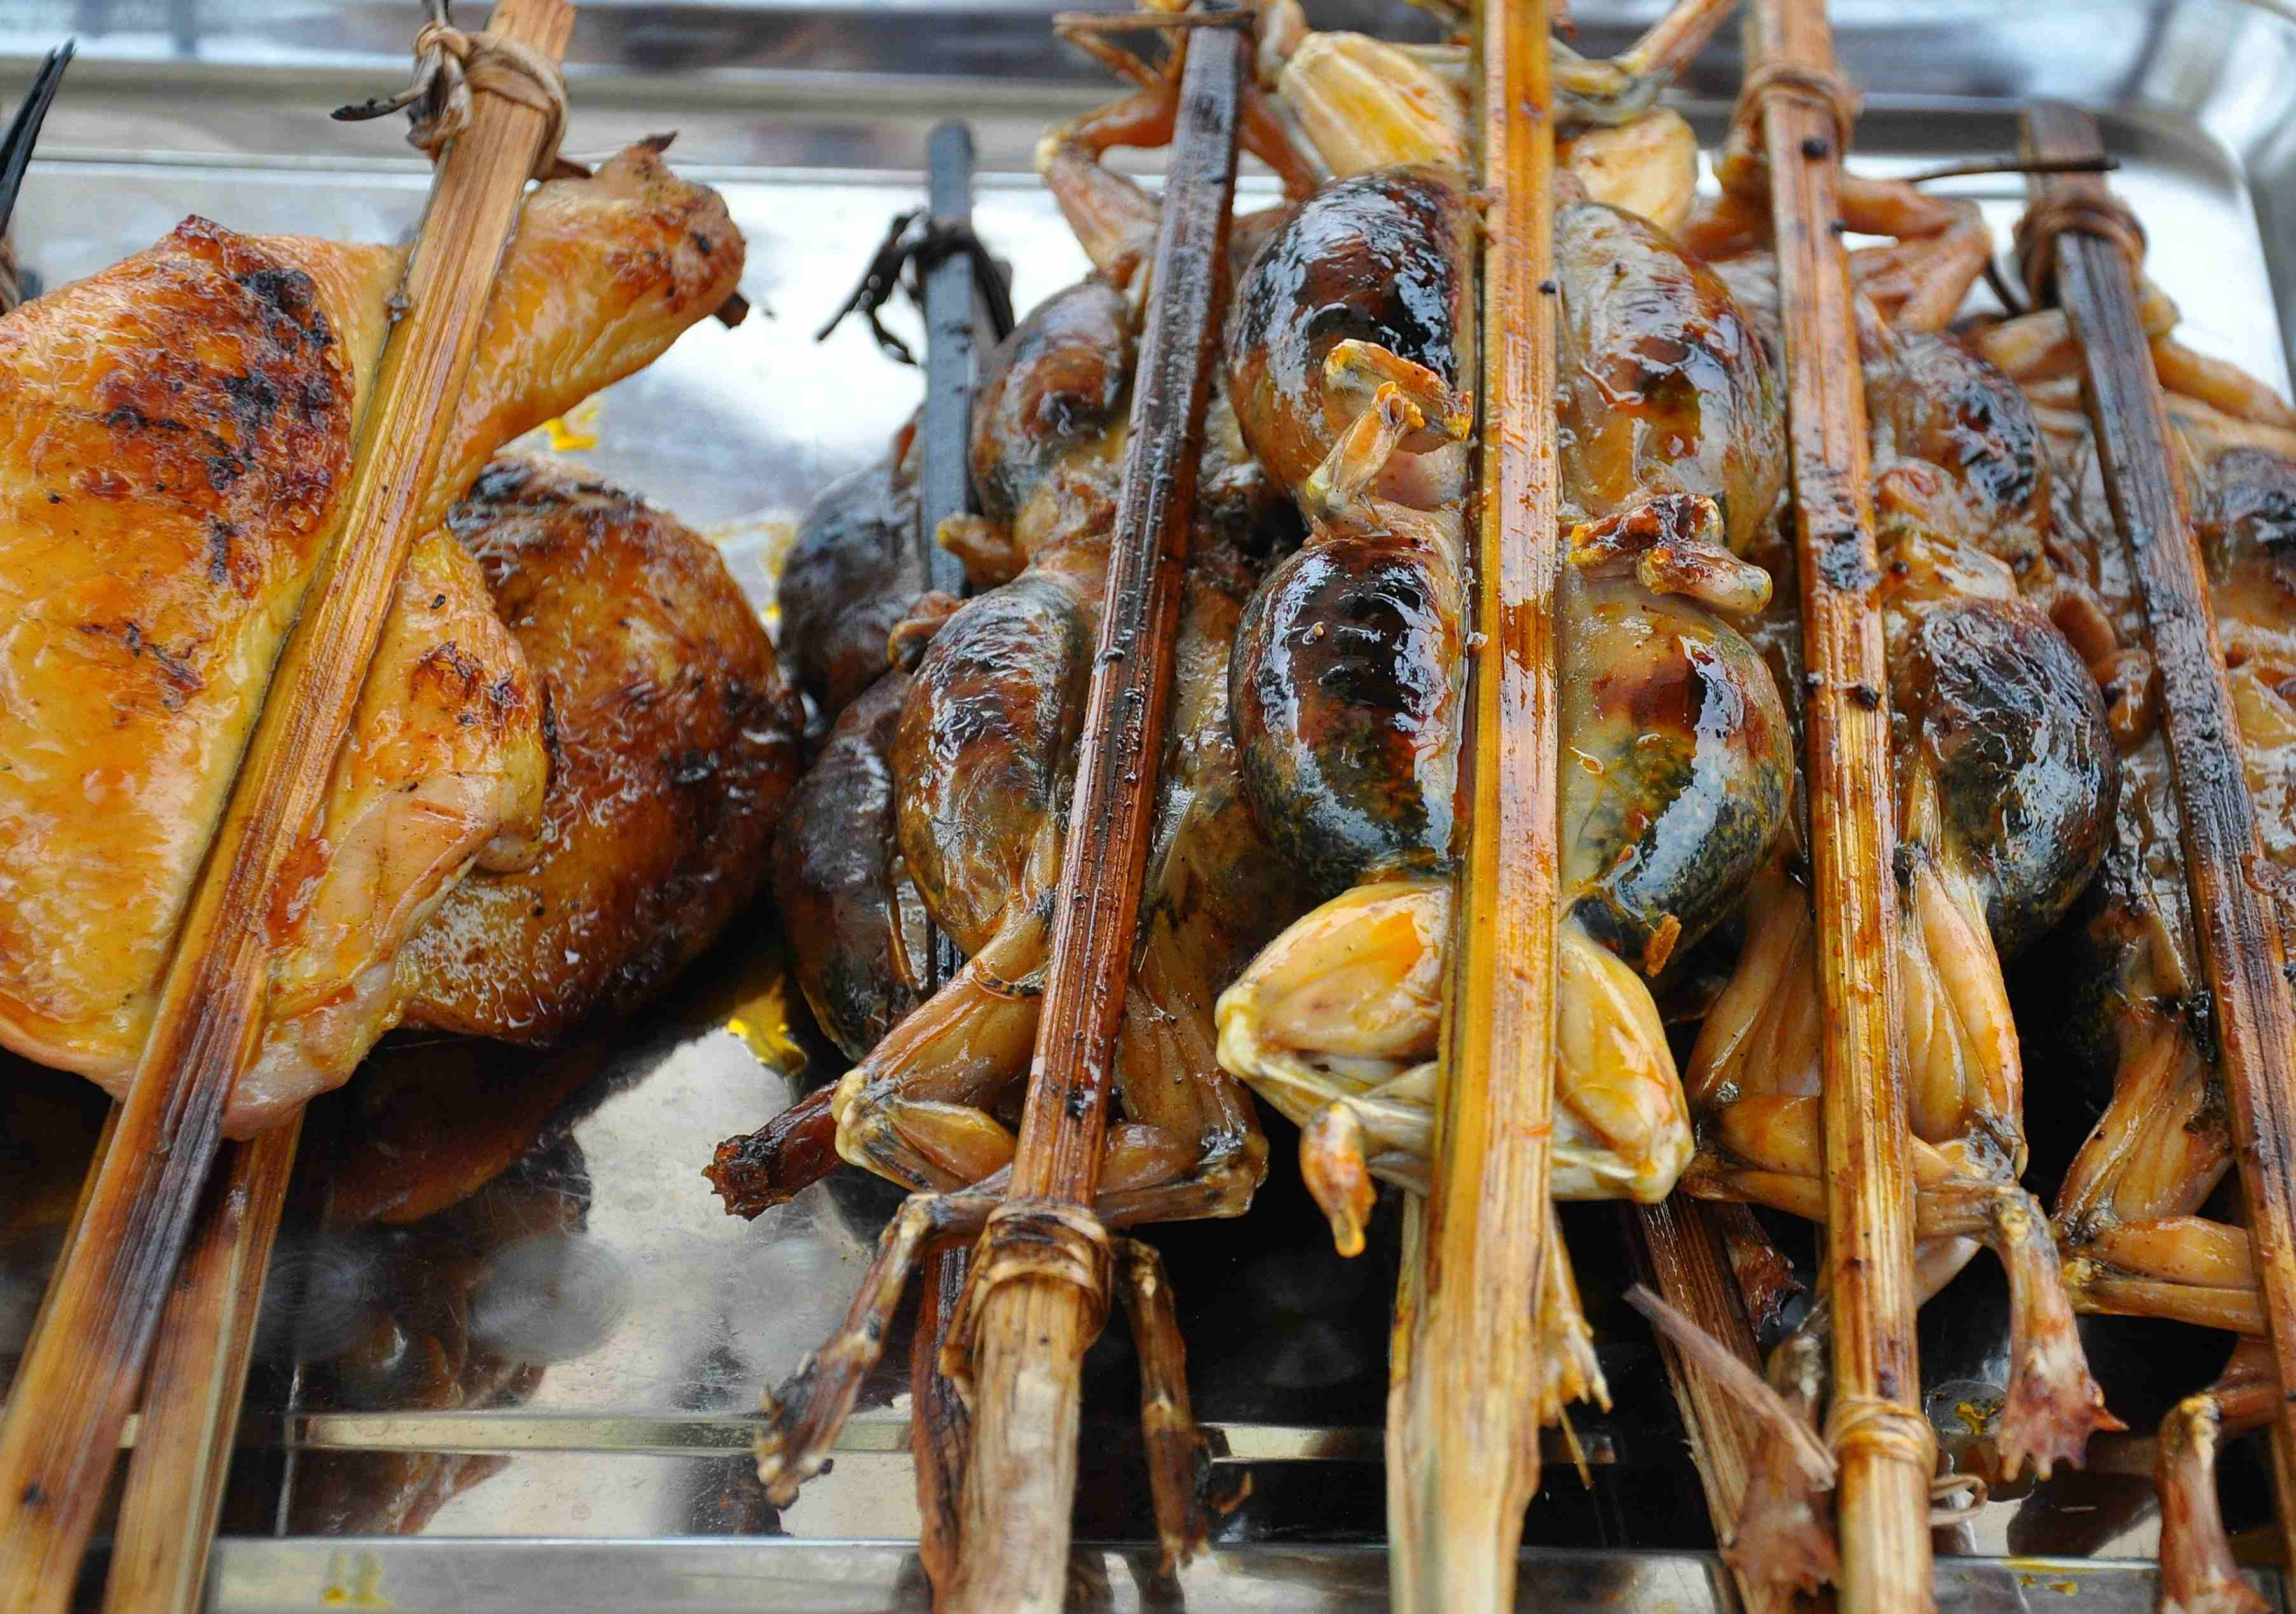 The entire frogs on bamboo skewers